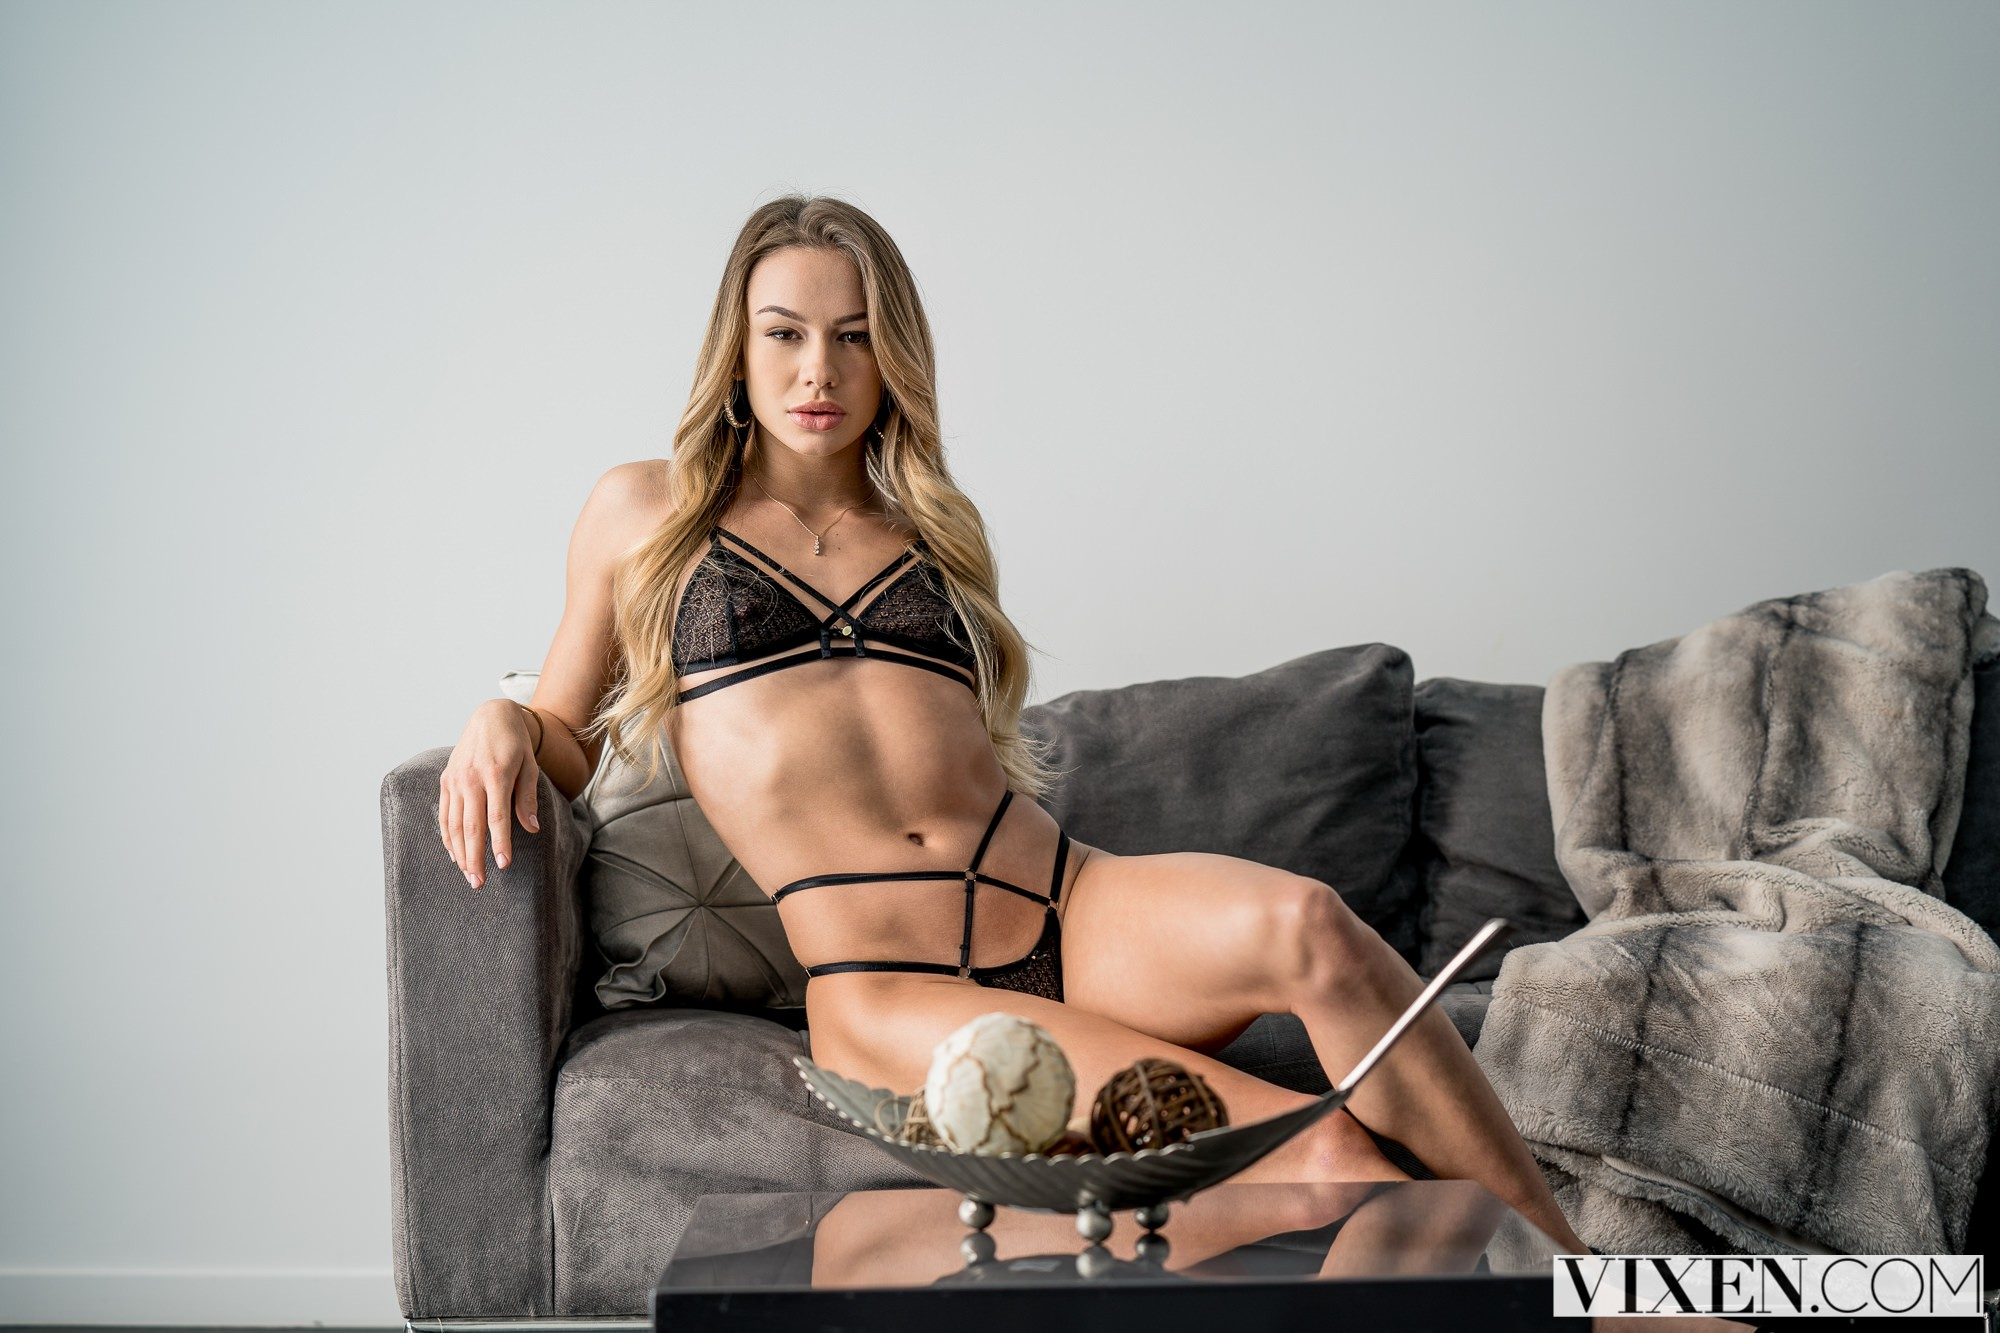 [Vixen] Naomi Swann – A Good Houseguest